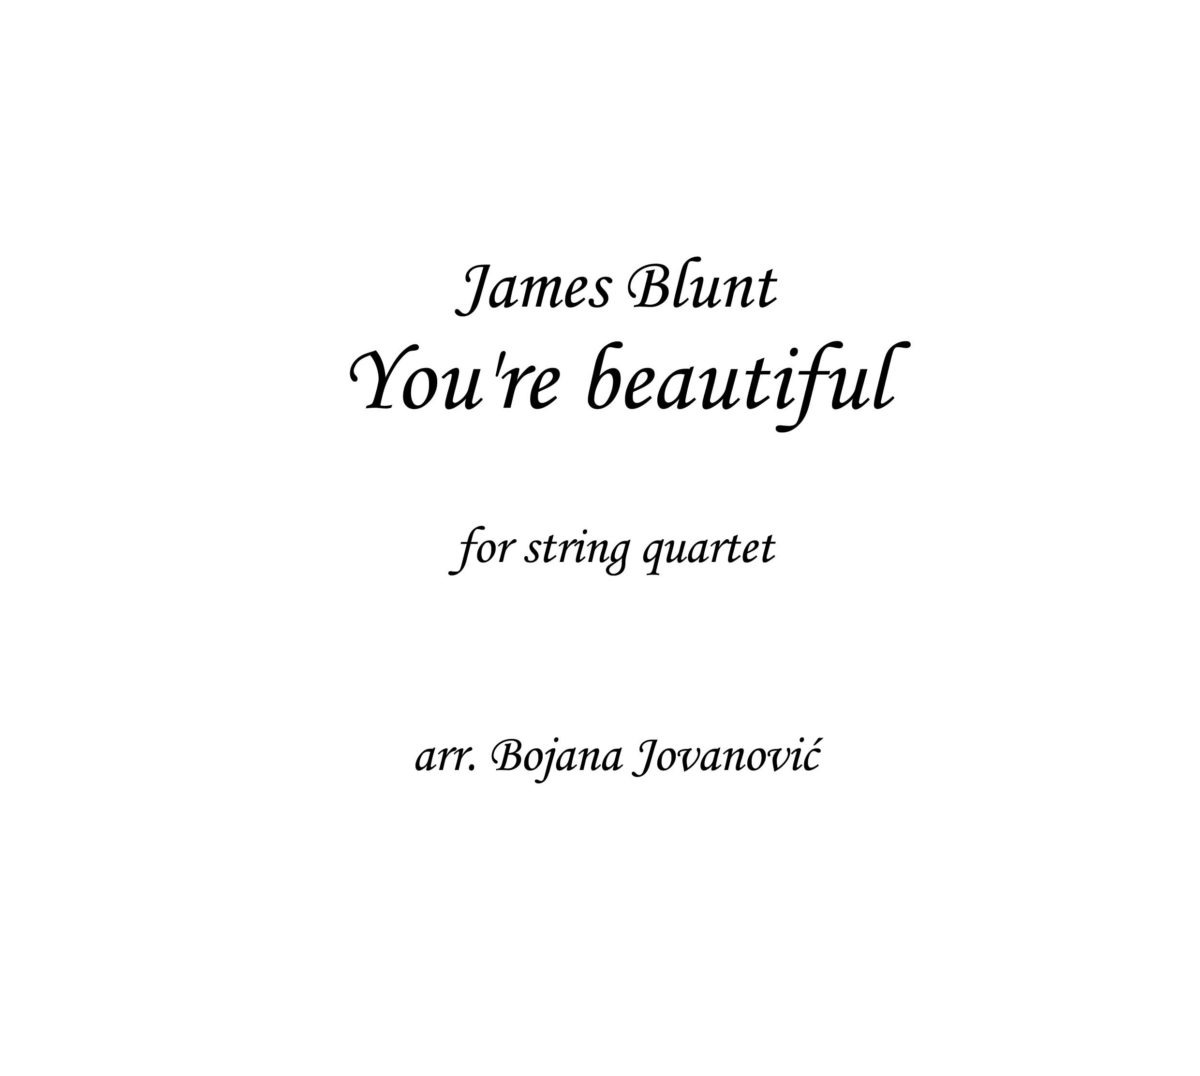 You're beautiful (James Blunt) - Sheet Music